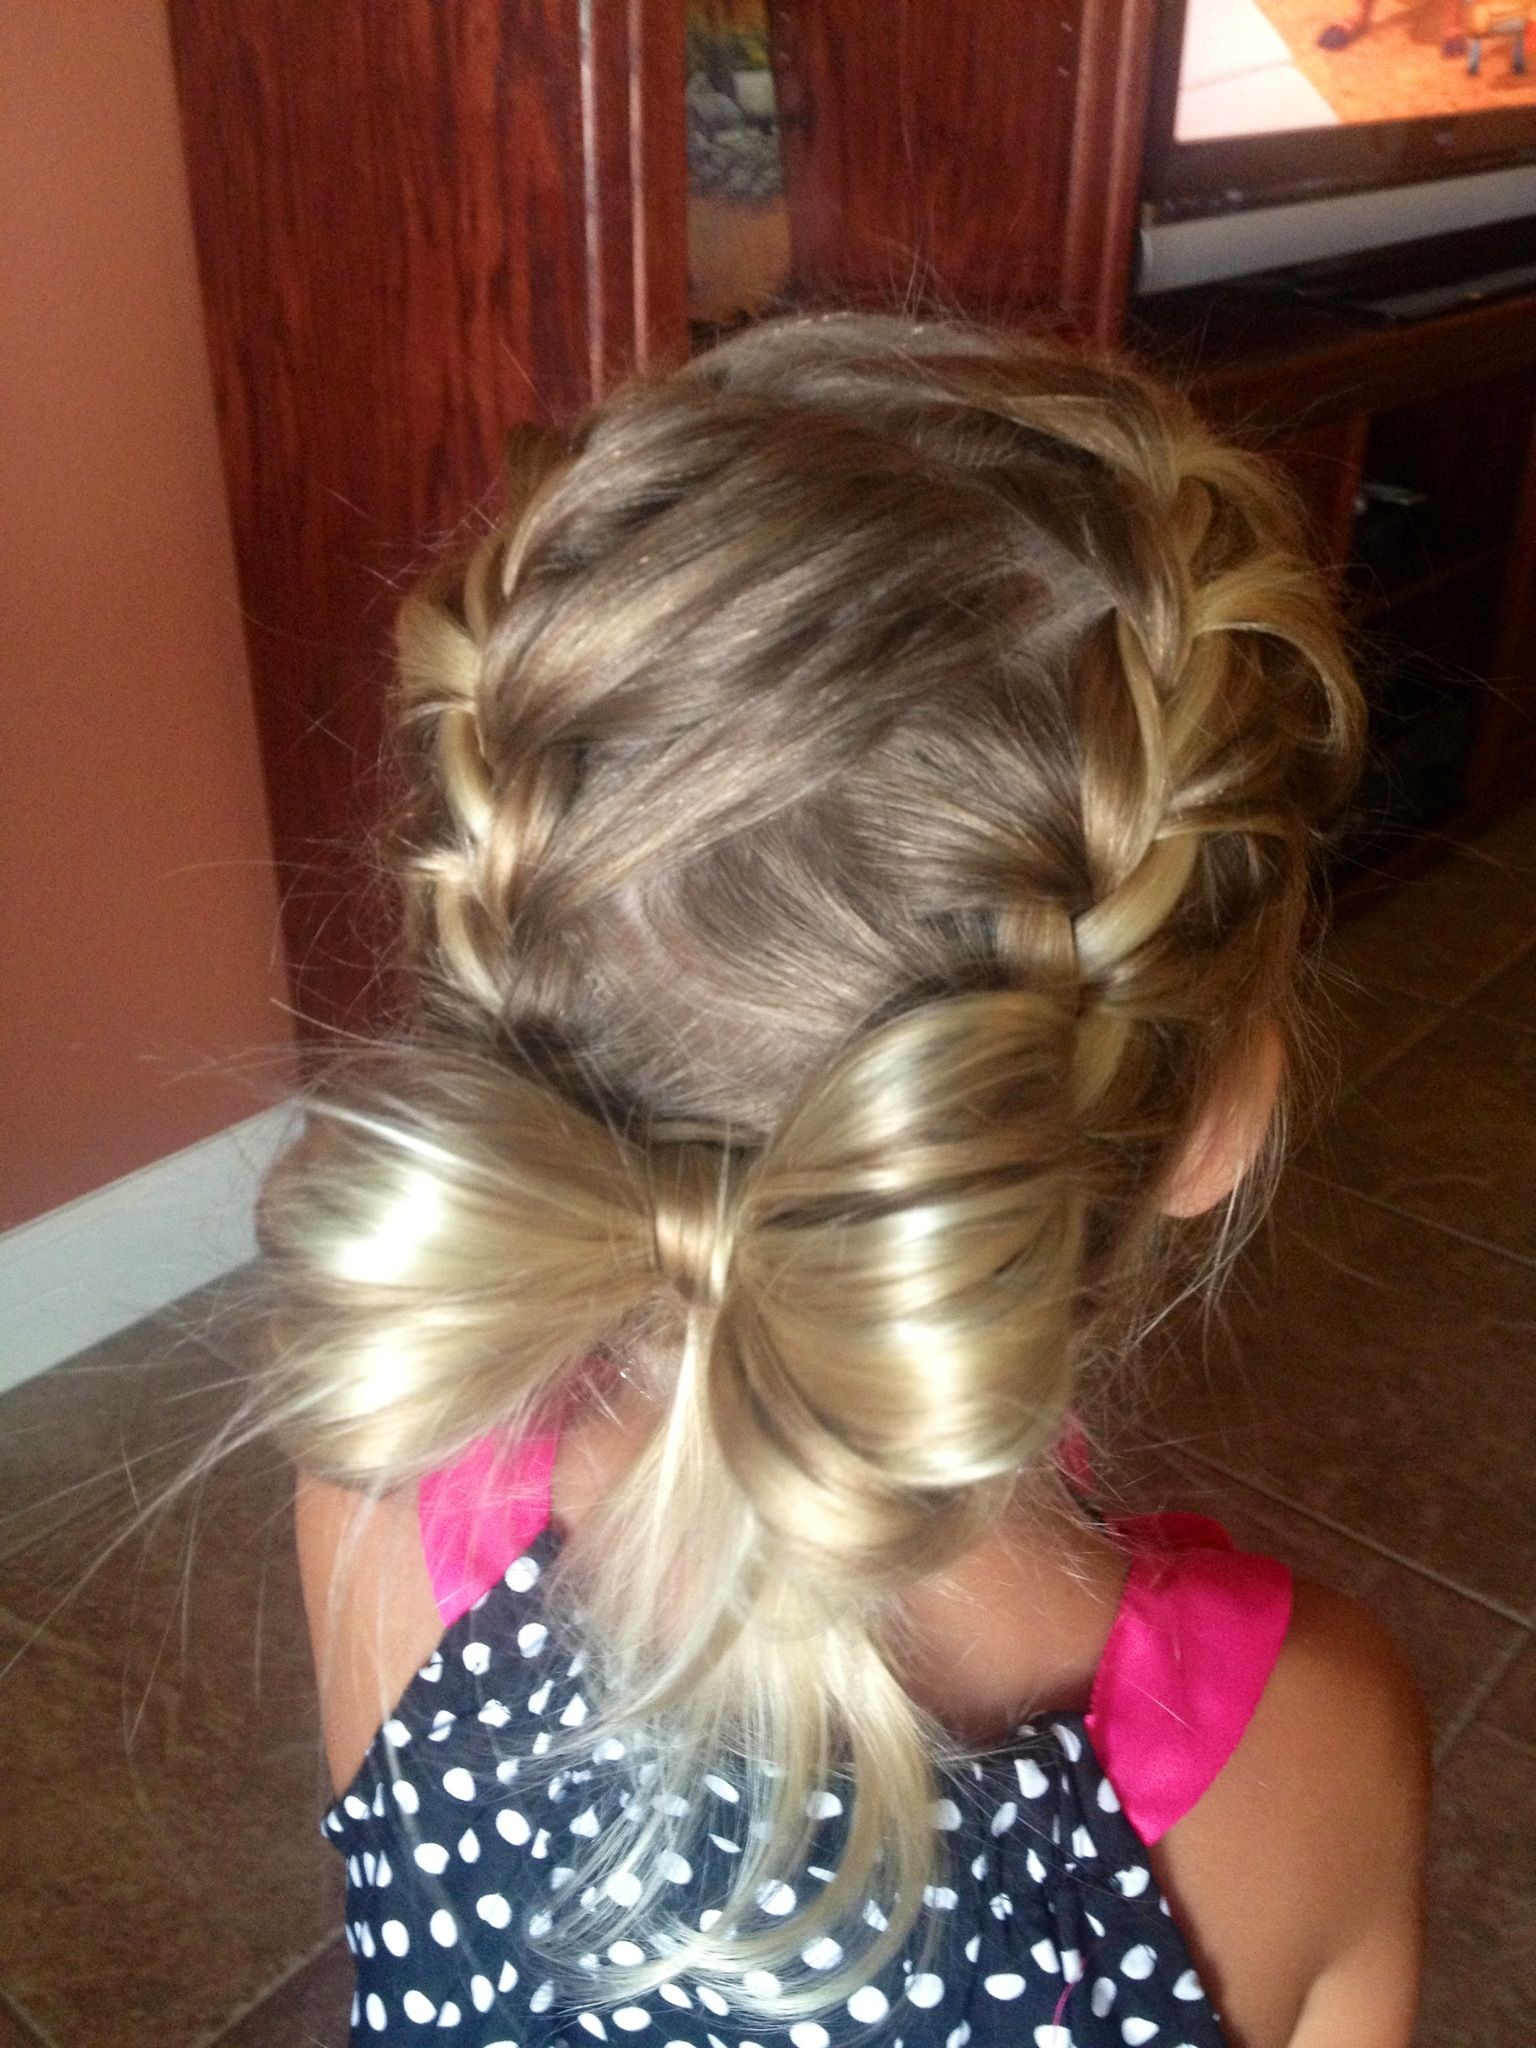 Cute little girl hair style hair pinterest girl hair